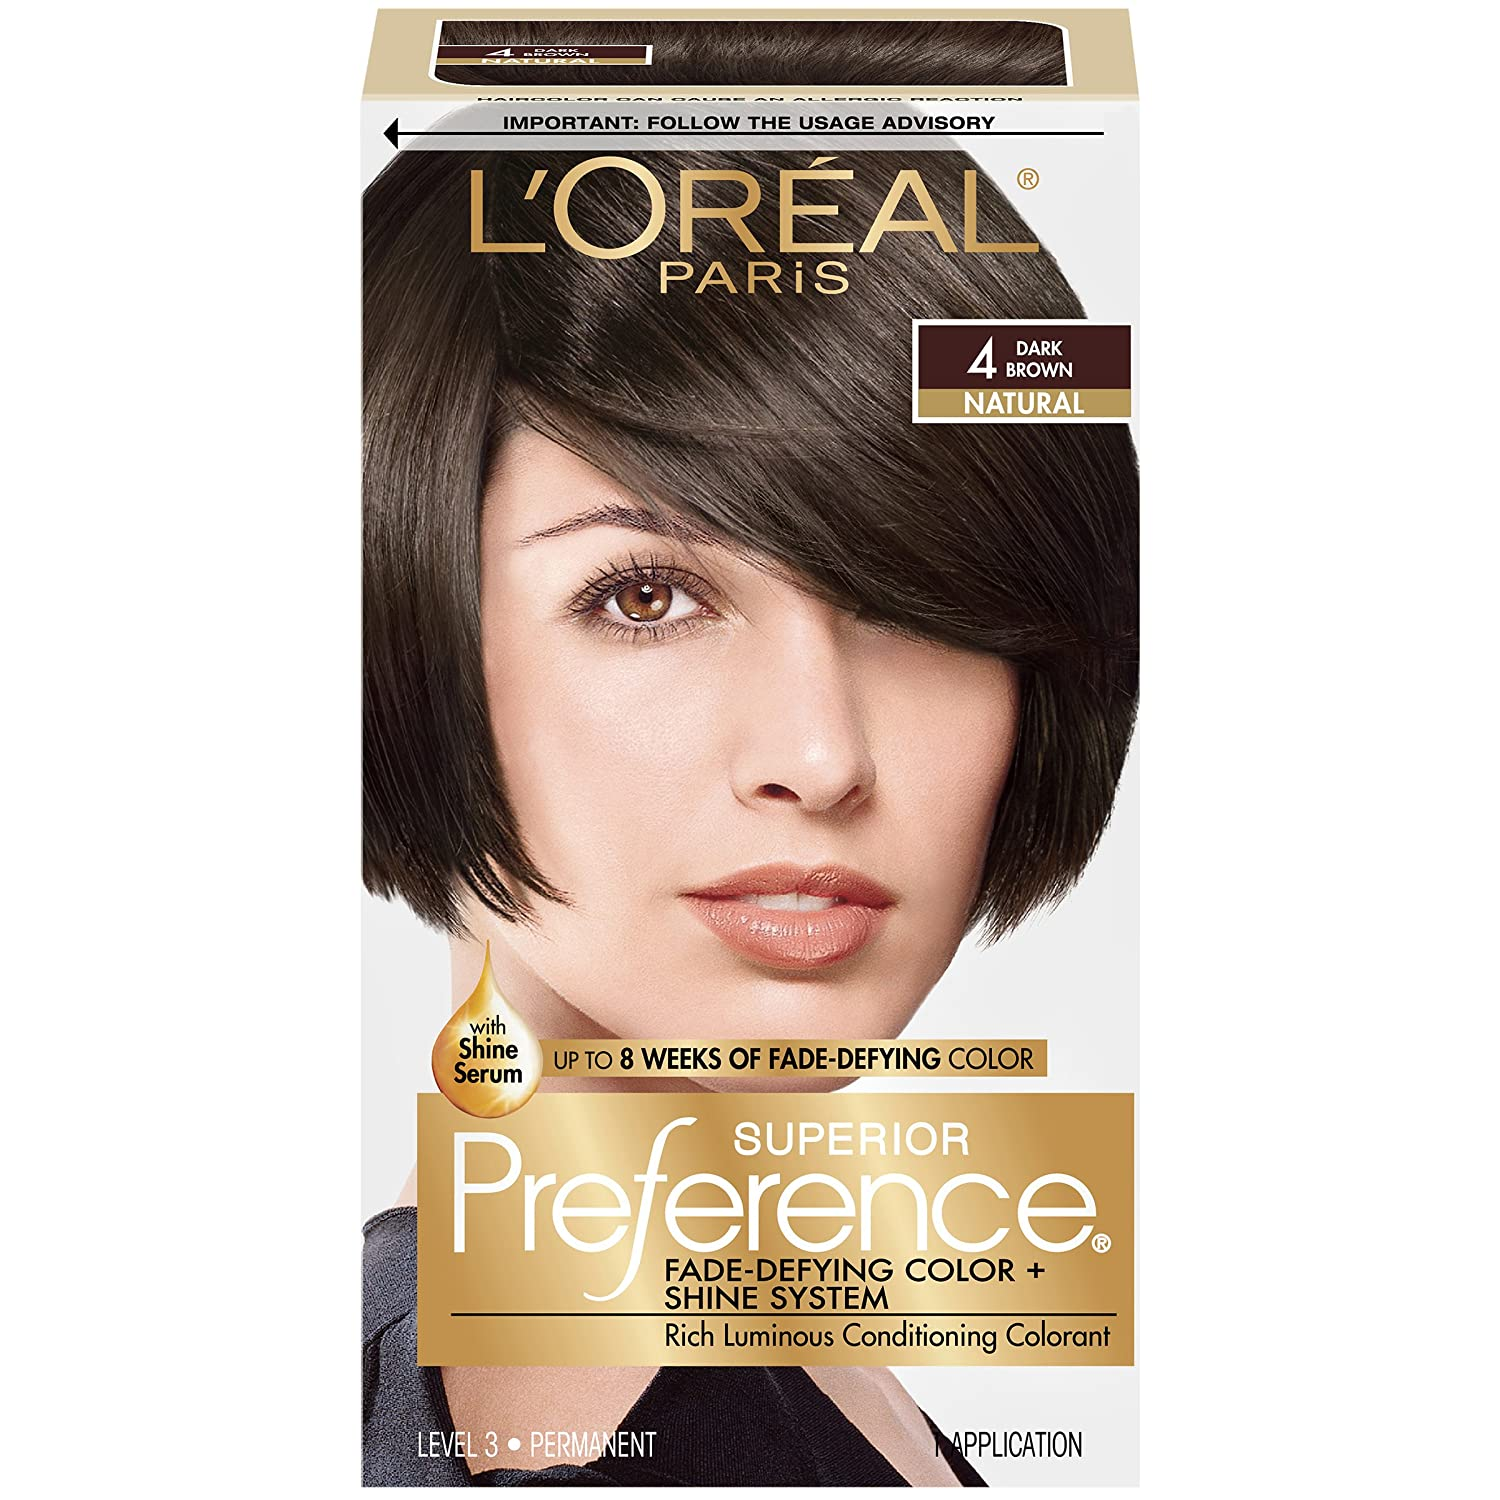 Ultra Blonde Hair Colorl Oreal Preference Paris Couture Hair Color